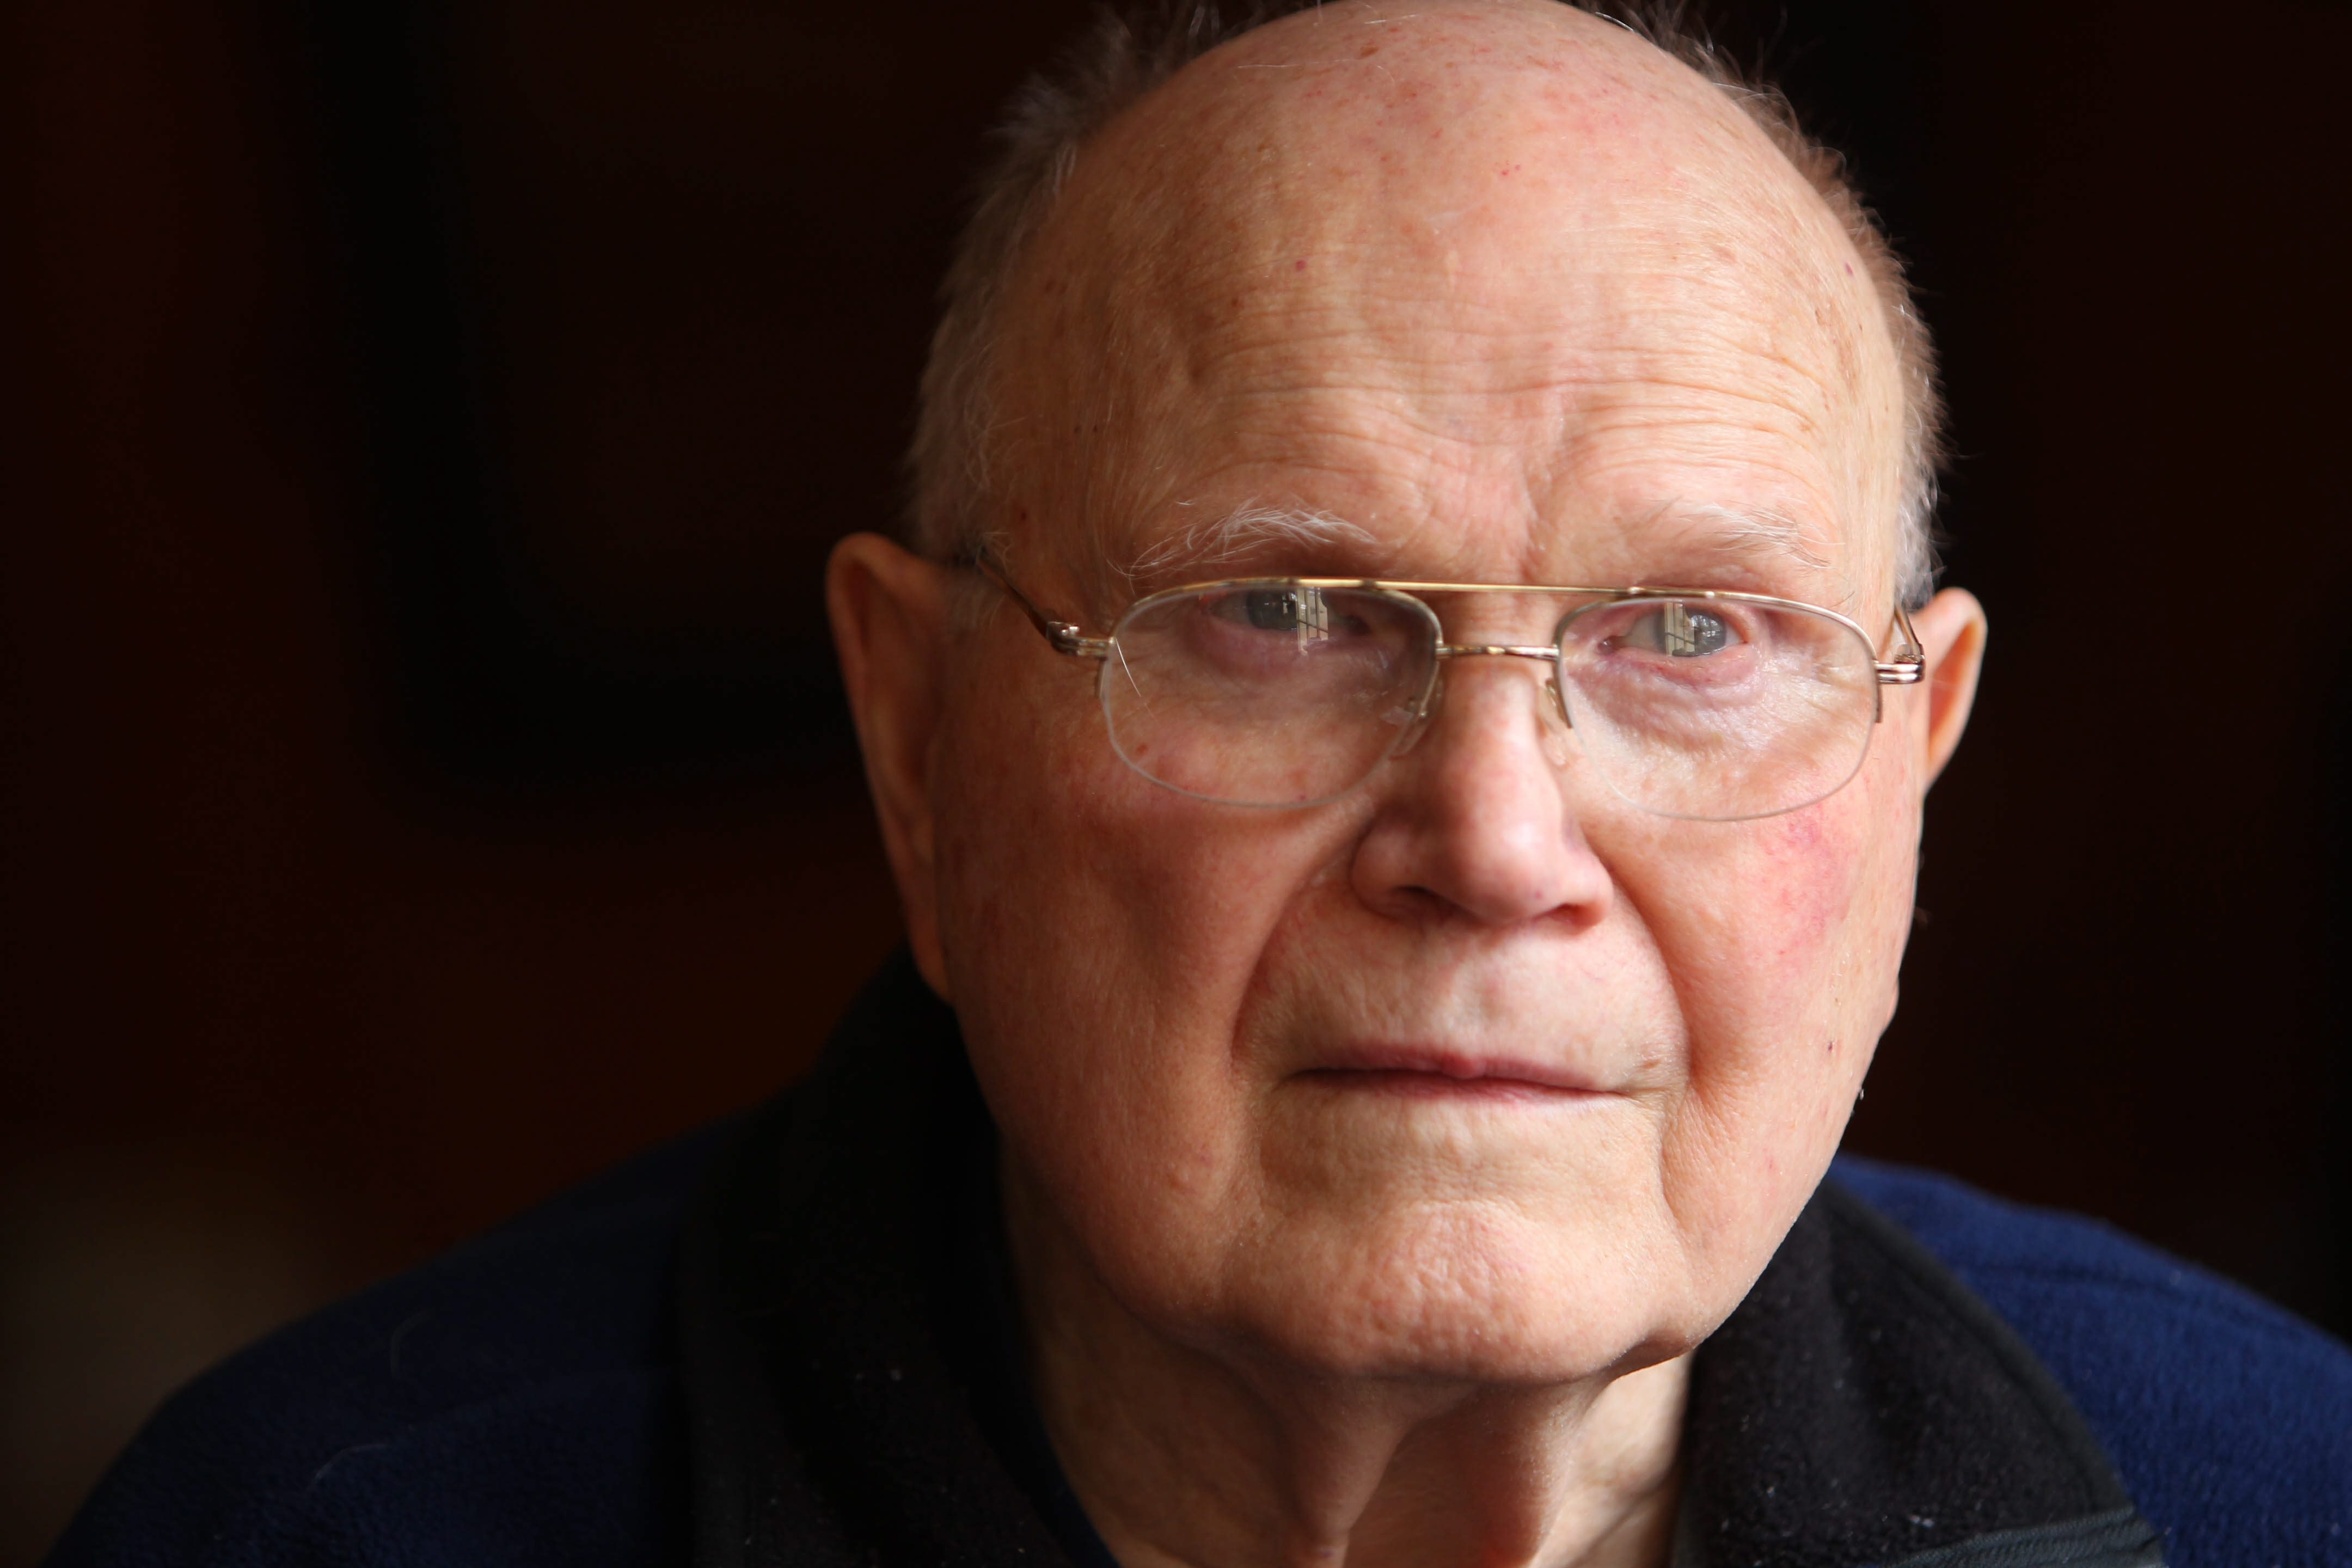 World War II Army veteran Robert W. Lally recounts the actions he took to get his sergeant to safety.